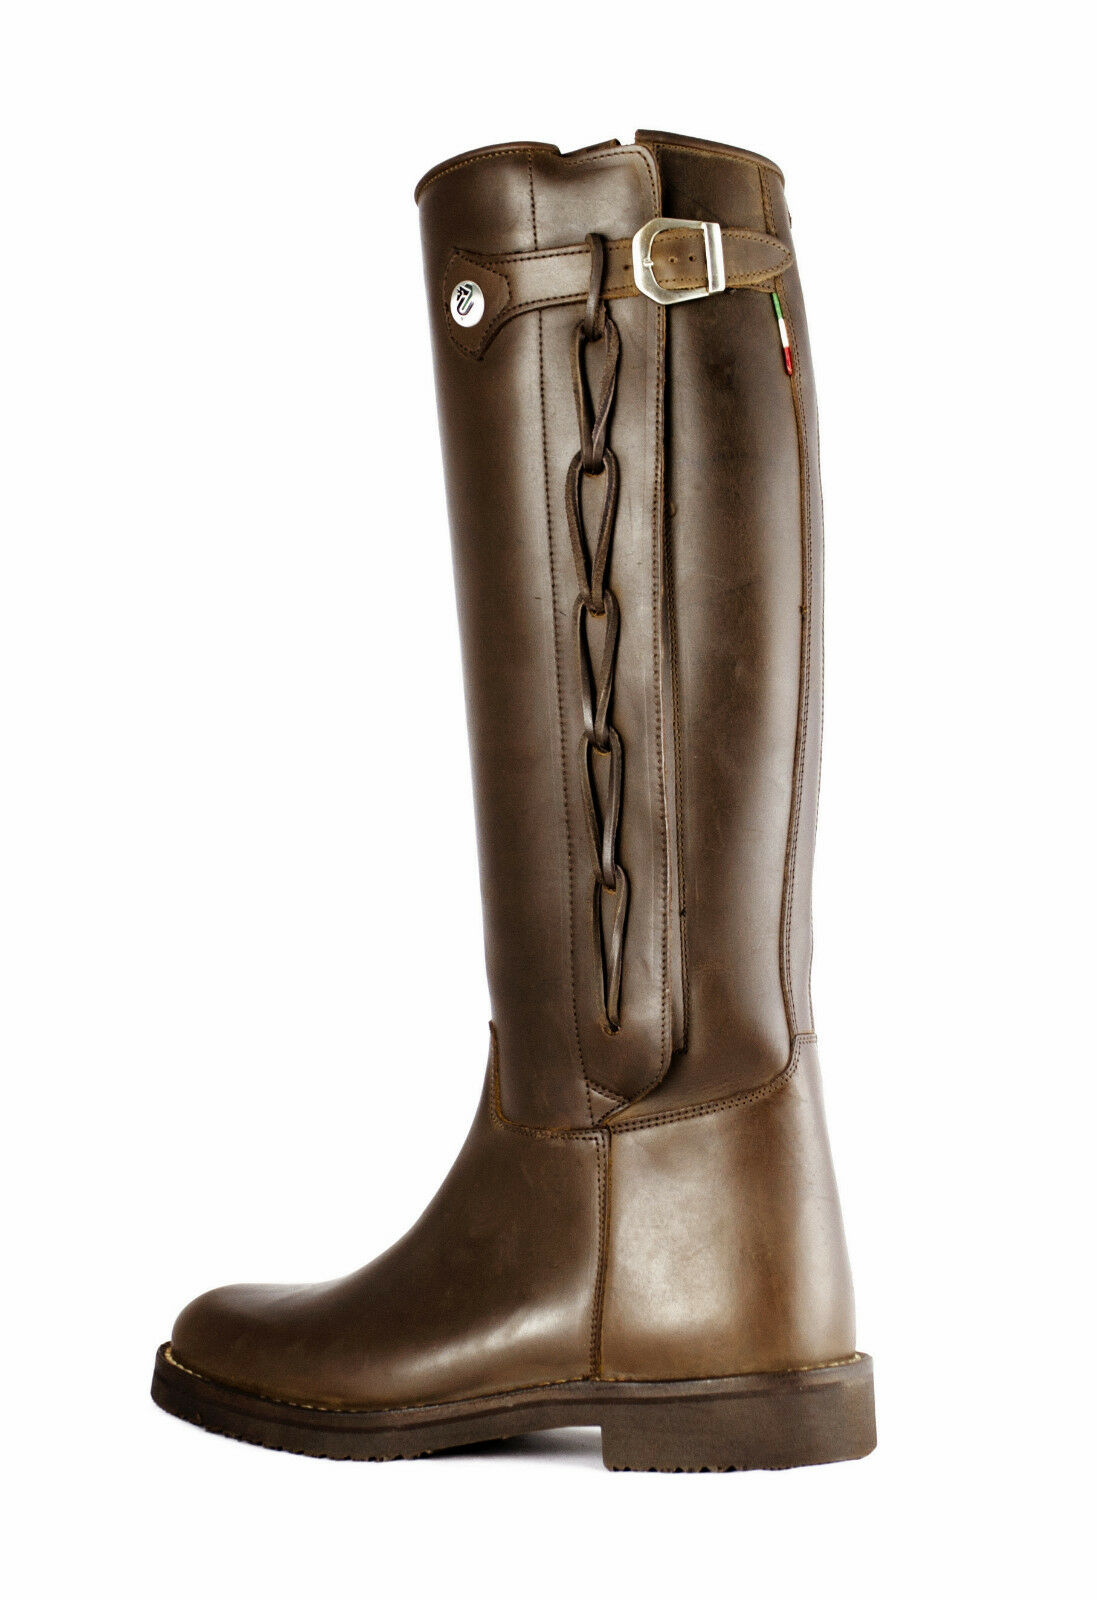 STIVALE BUTTERO DA EQUITAZIONE  - Buttero leather botas